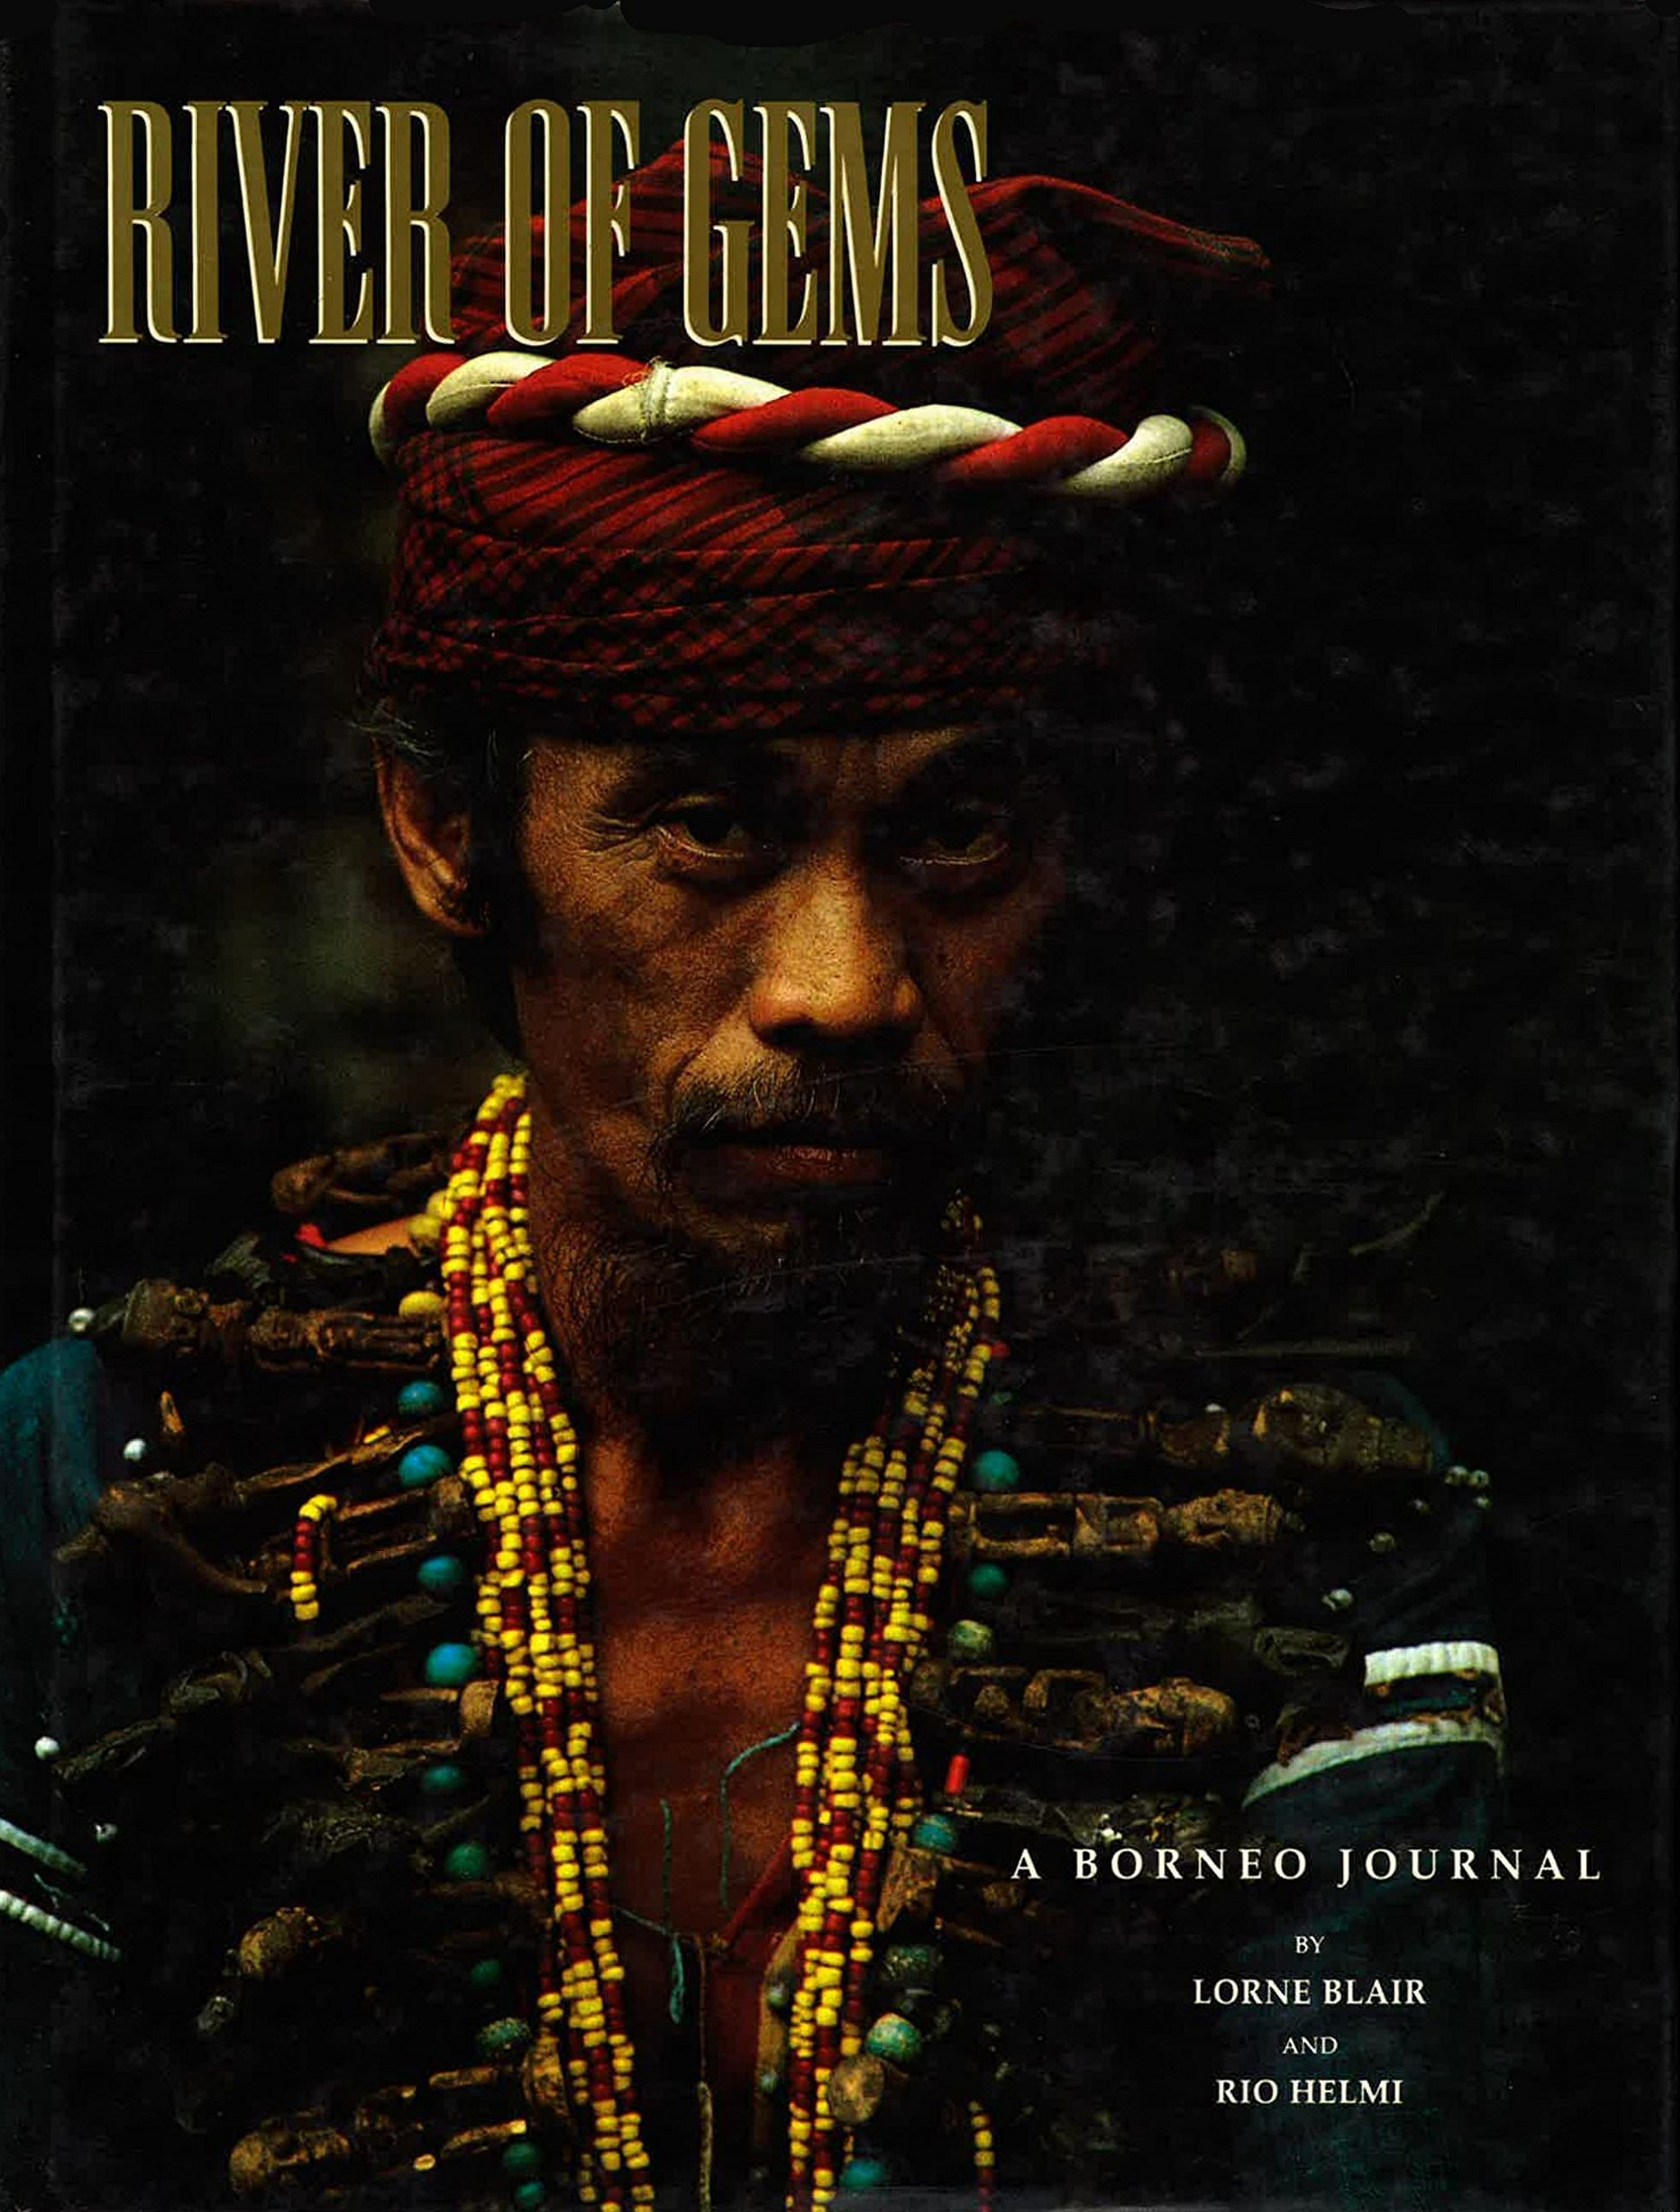 River of Gems | A Borneo Journal by Lorne Blair and Rio Helmi